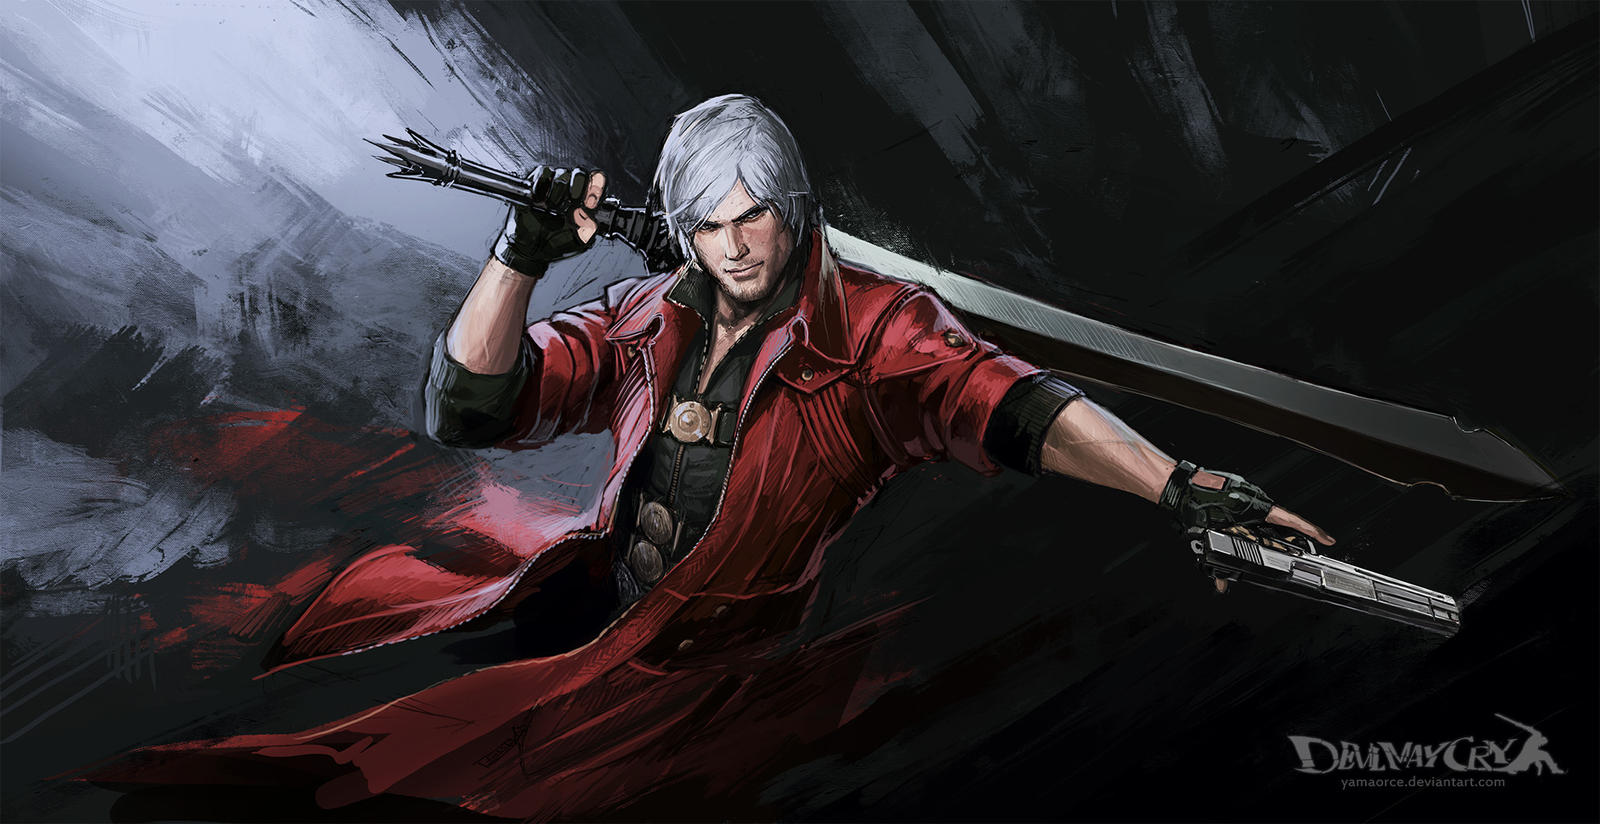 Devil May Cry Dante Wallpaper: Devil May Cry-Dante By YamaOrce On DeviantArt